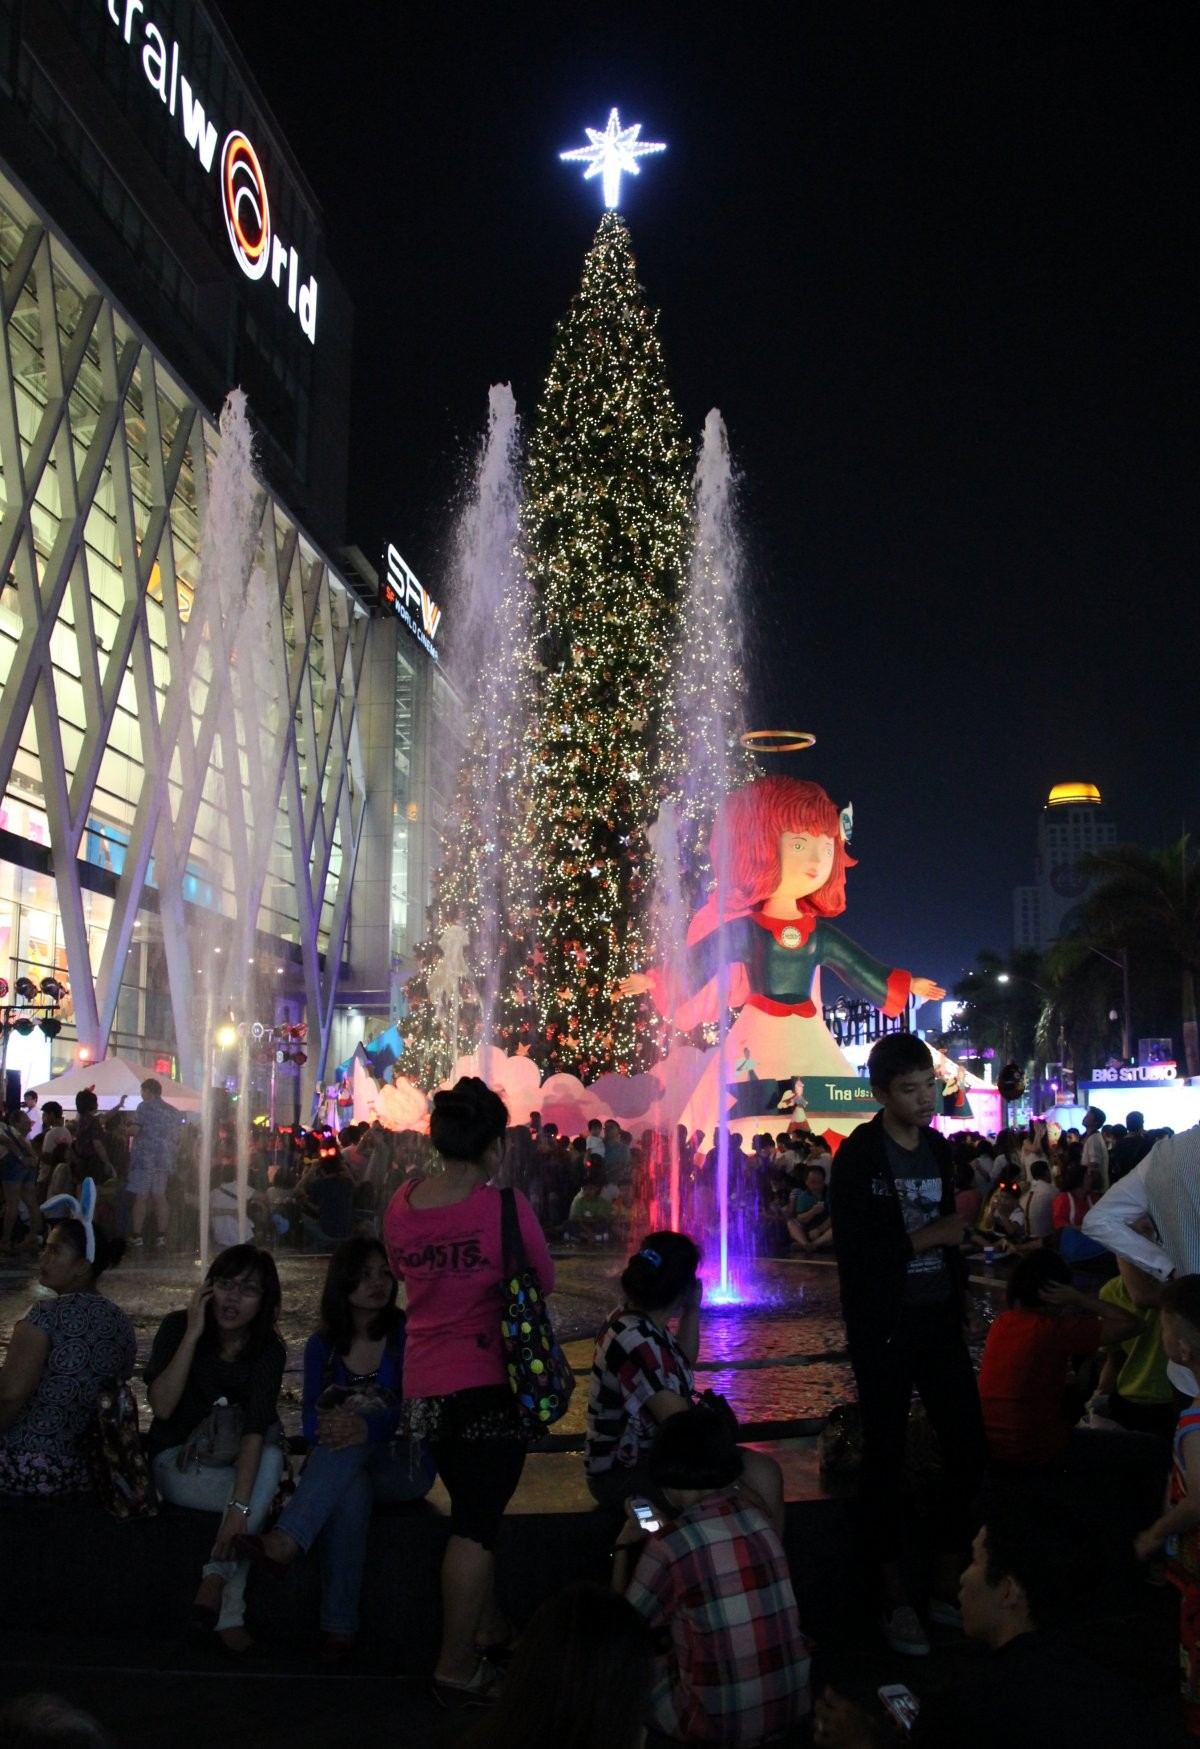 Bangkok - New Year Celebrations am Central World/Siam IX